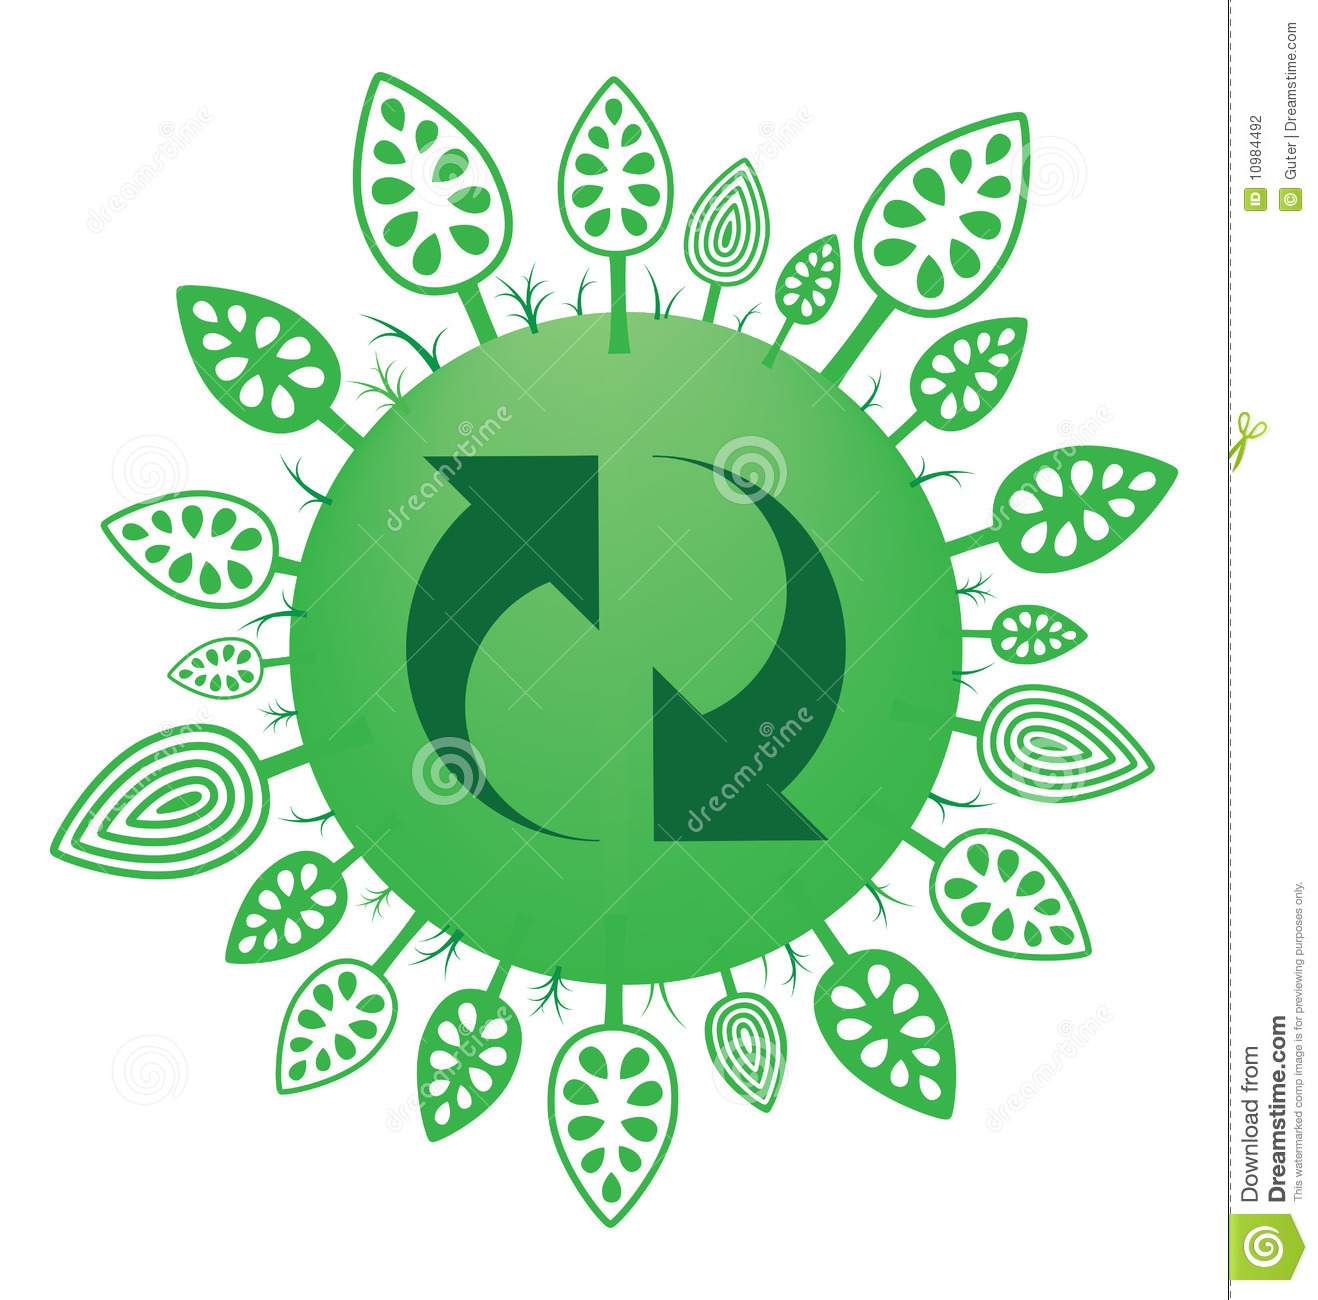 Pics of recycling symbol gallery symbol and sign ideas symbol for recycling image collections symbol and sign ideas recycle symbol and trees stock vector illustration biocorpaavc Gallery